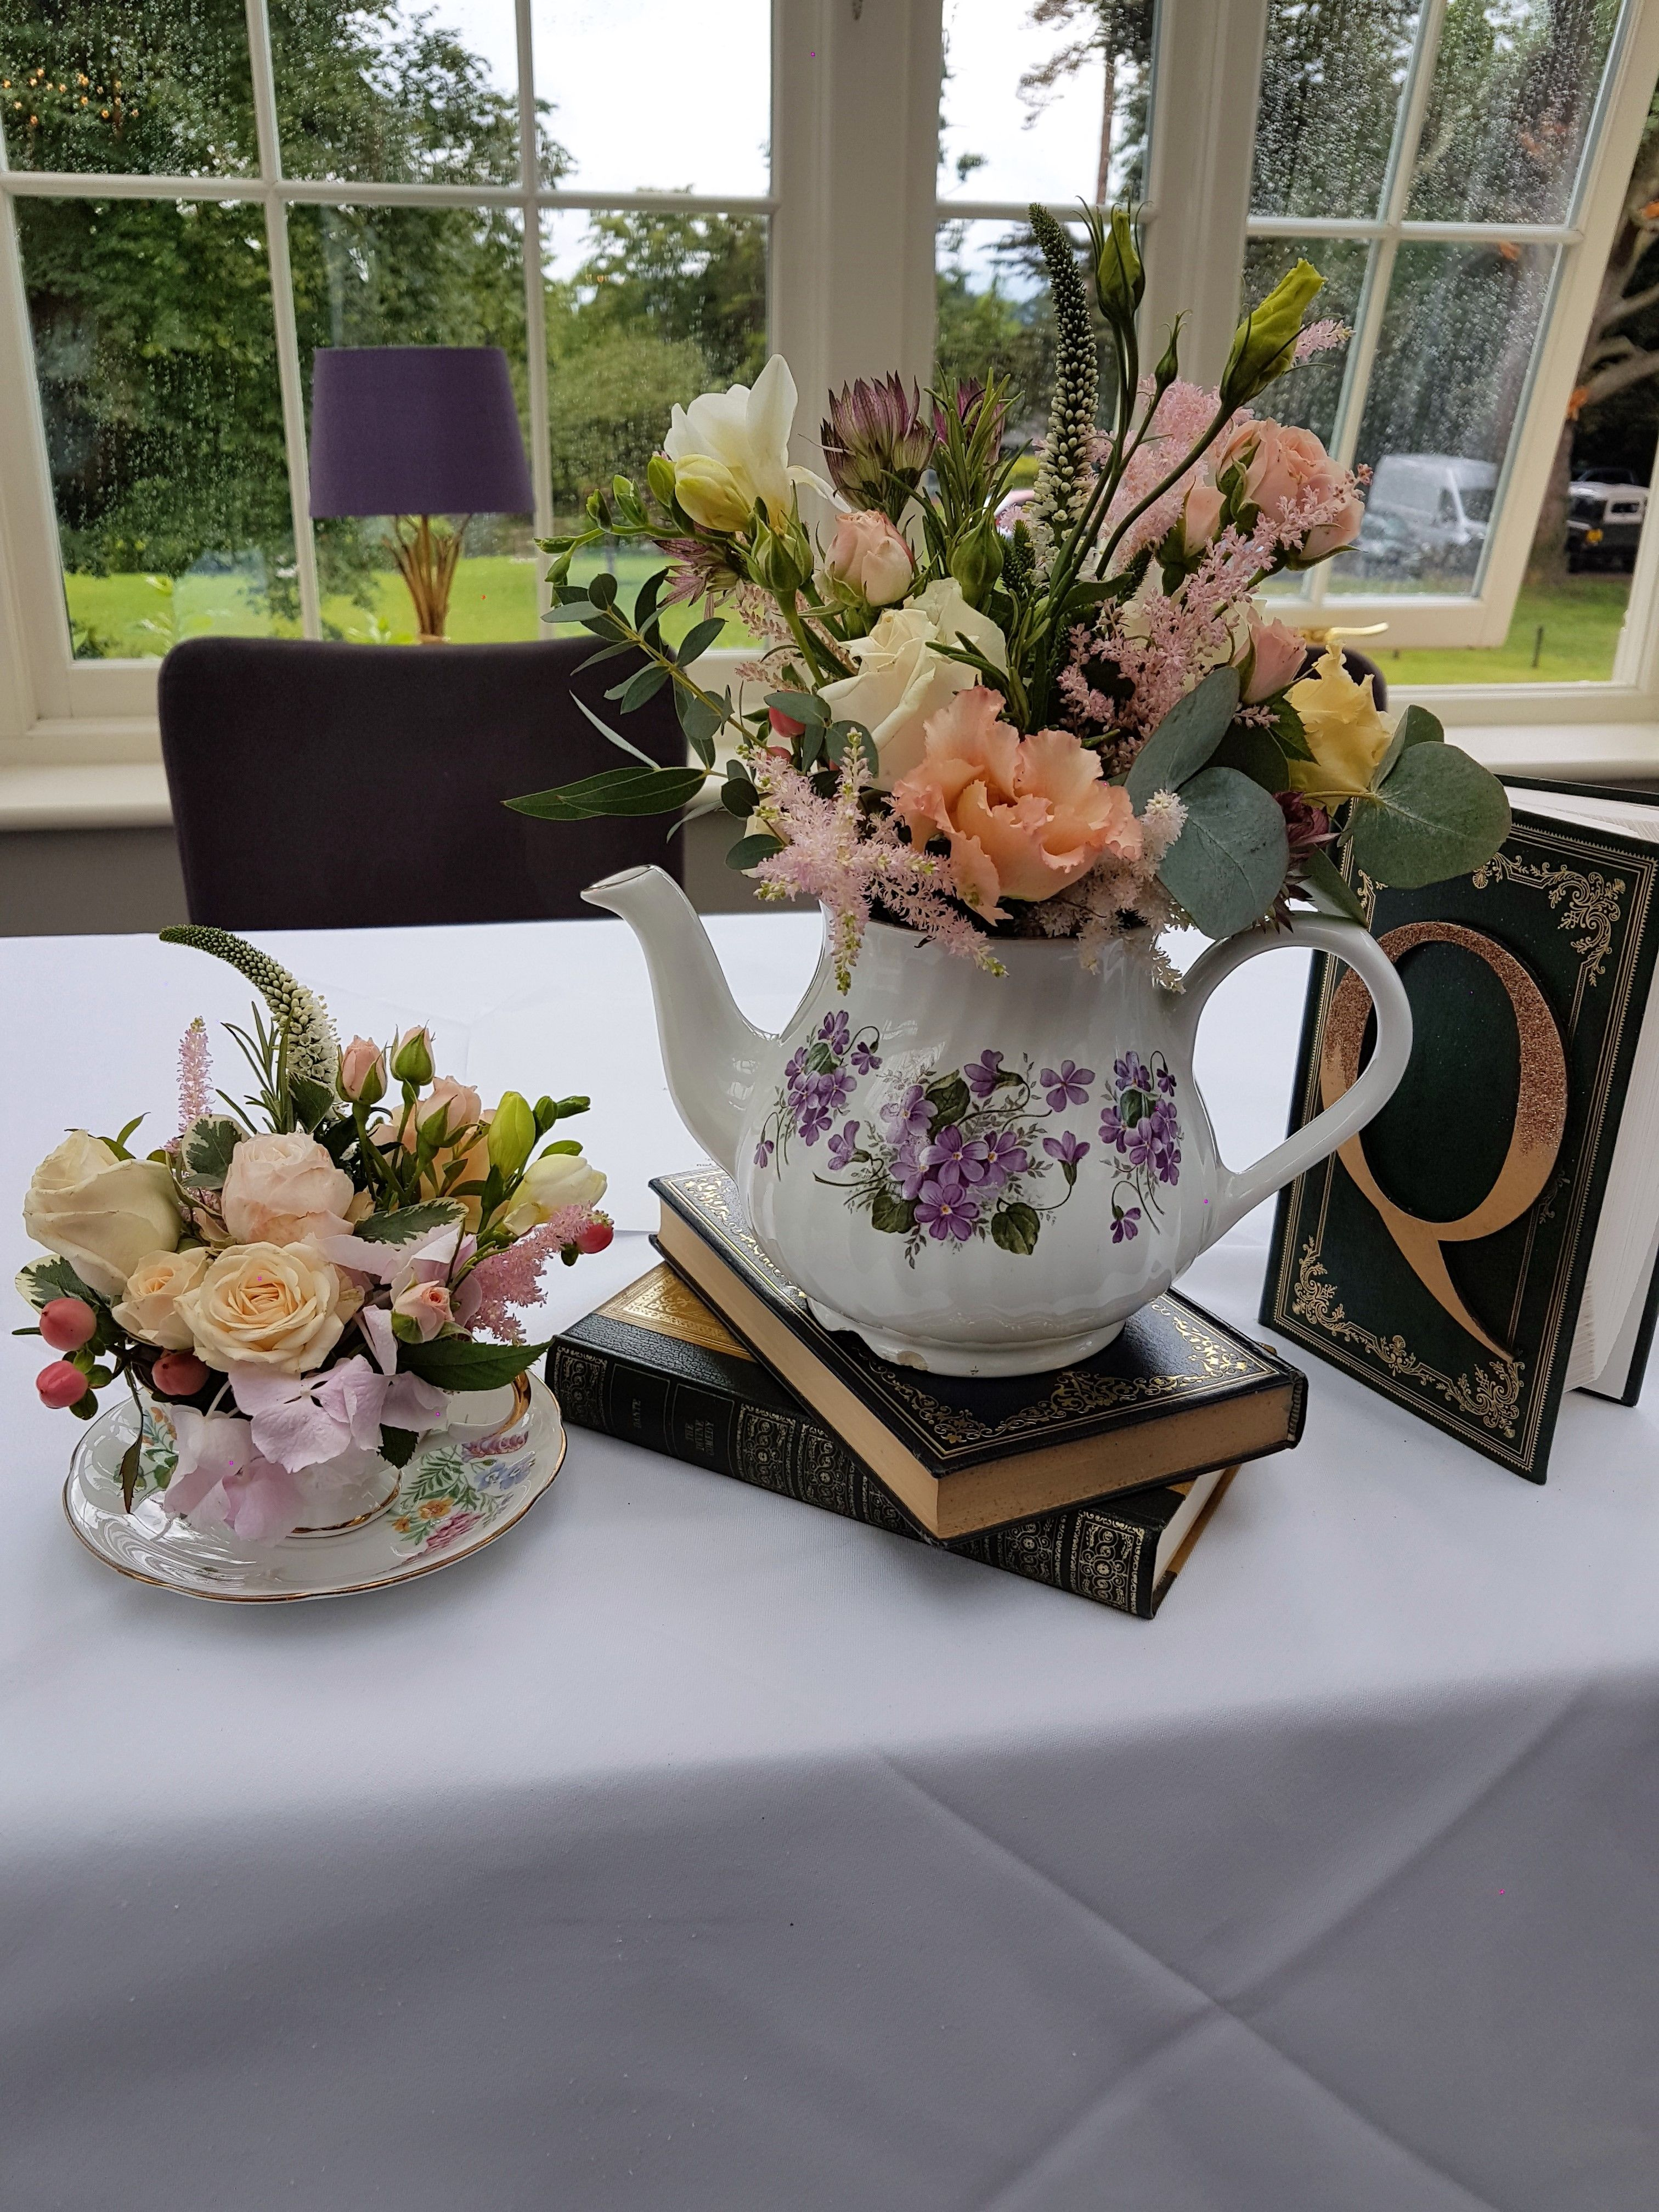 Alice in wonderland themed wedding at st michaels manor st albans willow house flowers aylesbury florist free same day delivery in aylesbury bucks local on line florist for next day local delivery flowers bouquets izmirmasajfo